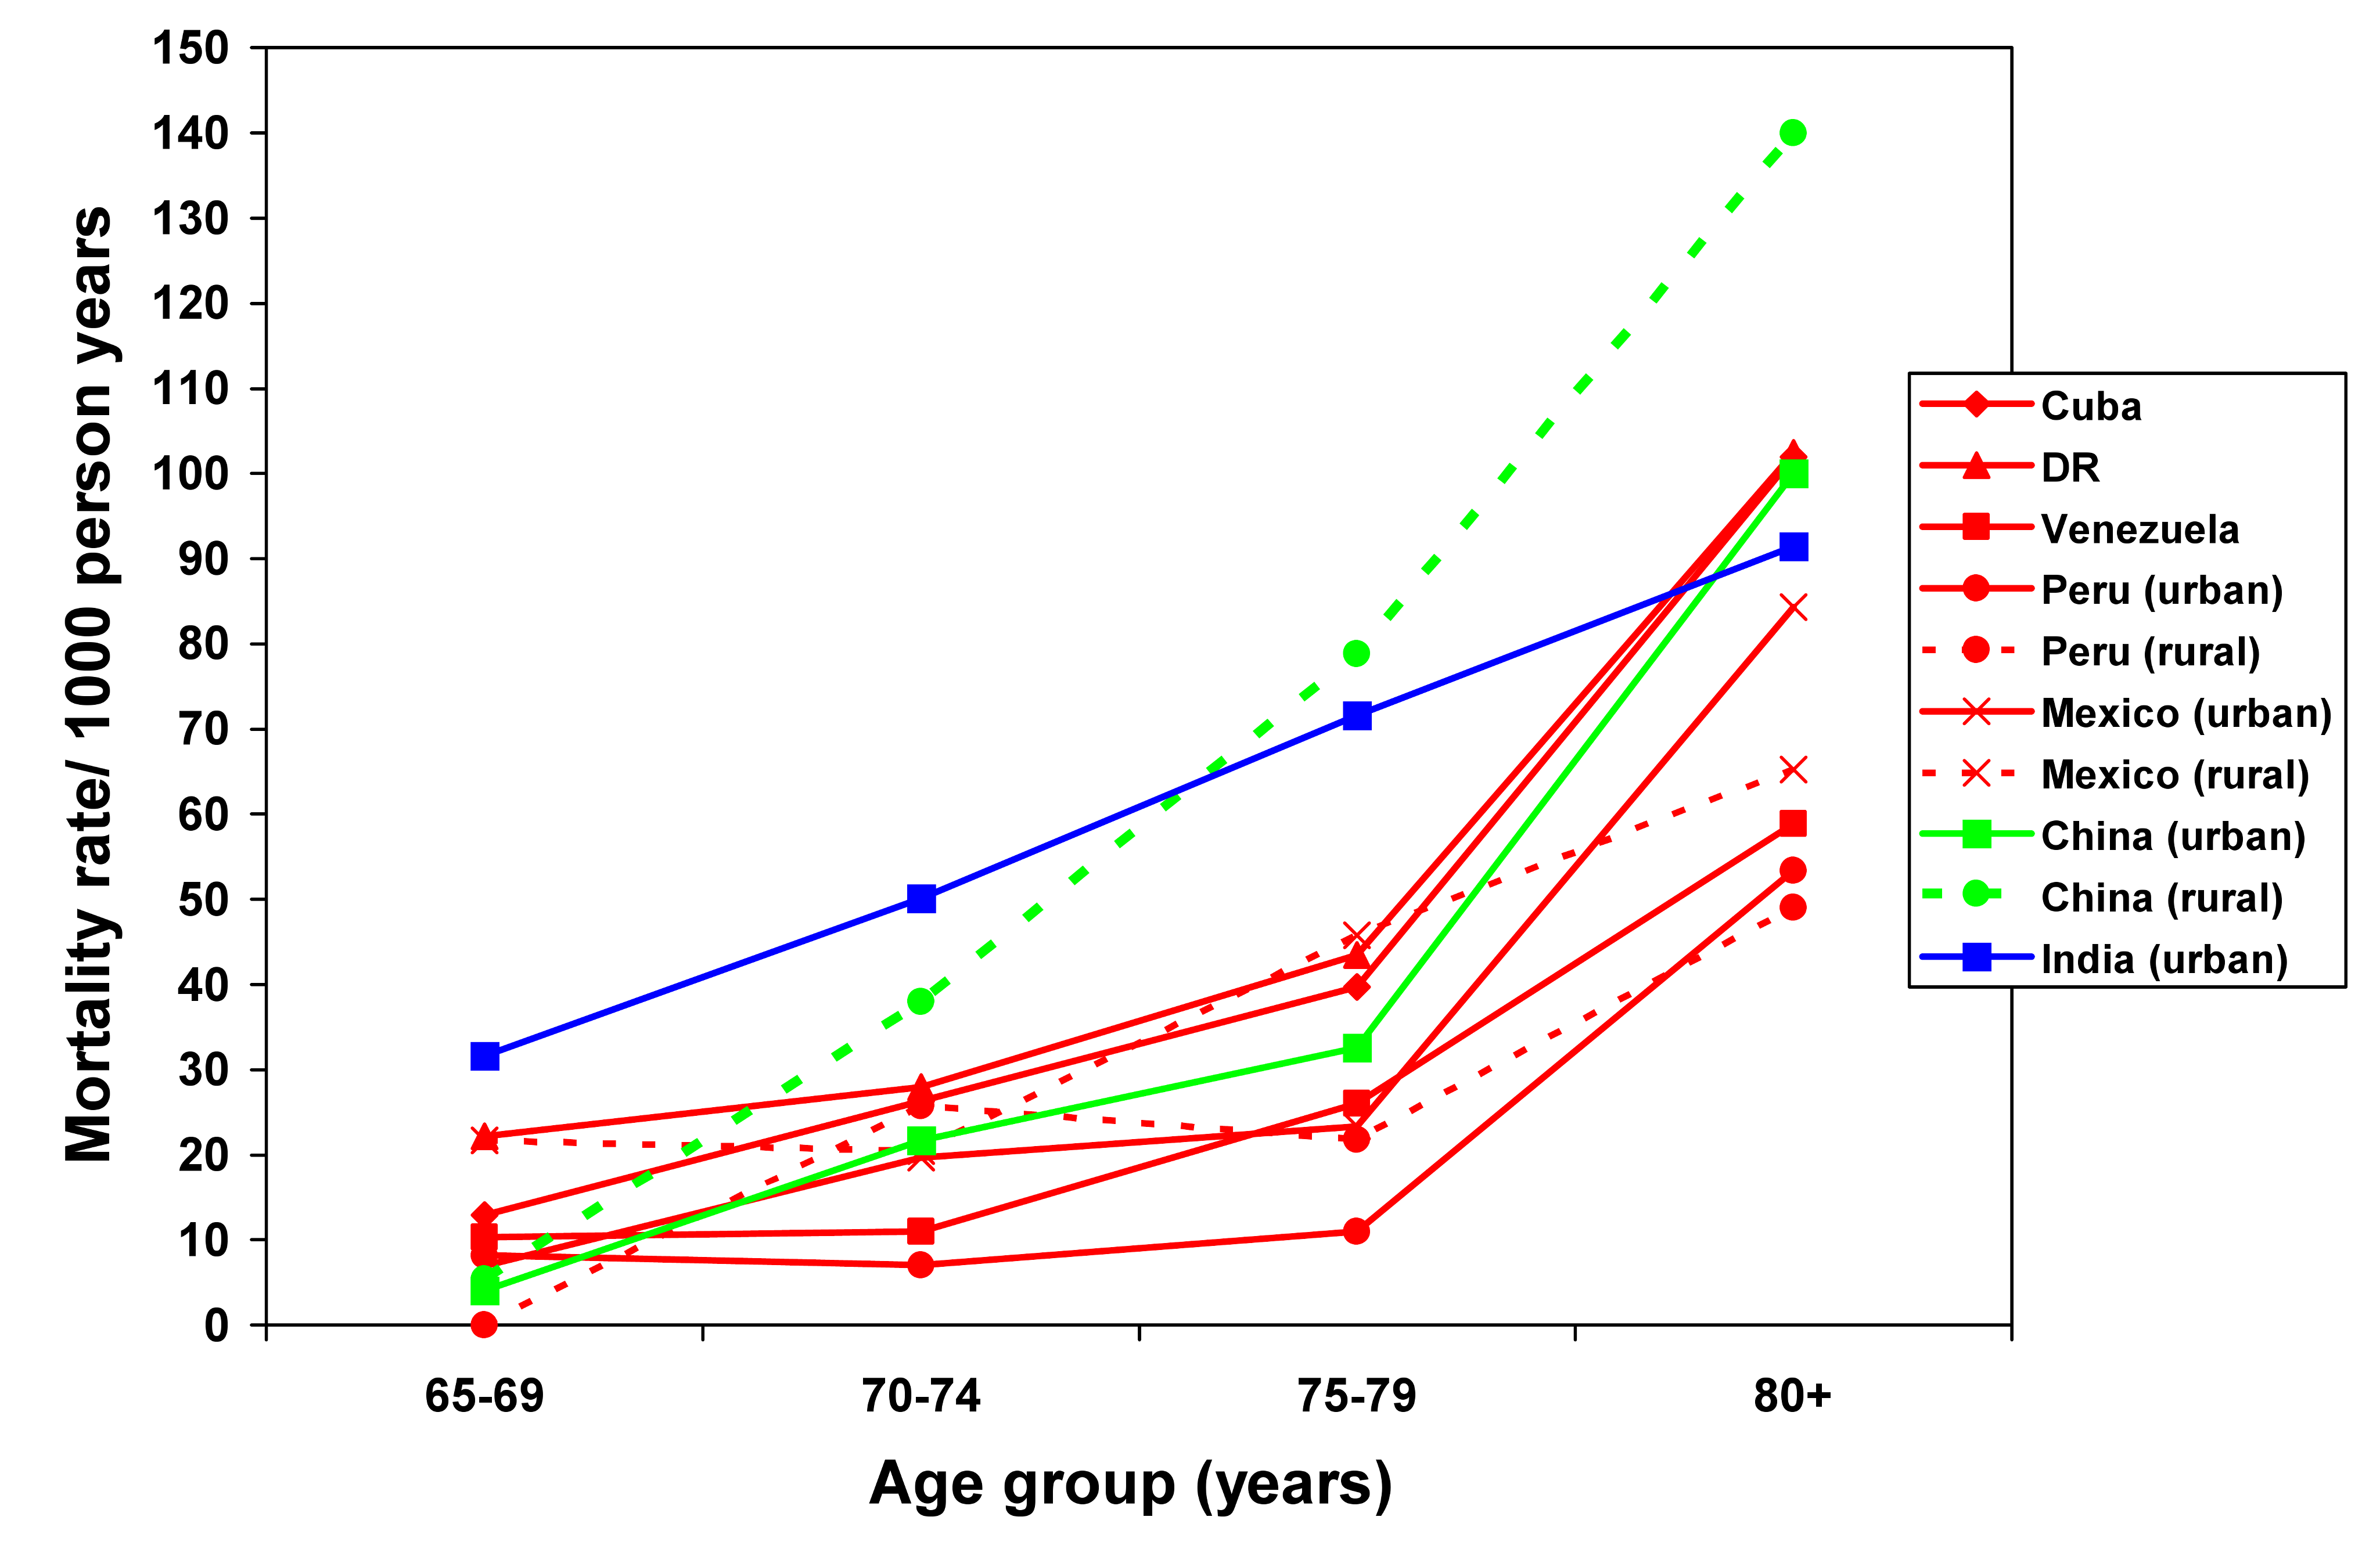 Mortality rate (per 1,000 person-years) by age group for each site among women.